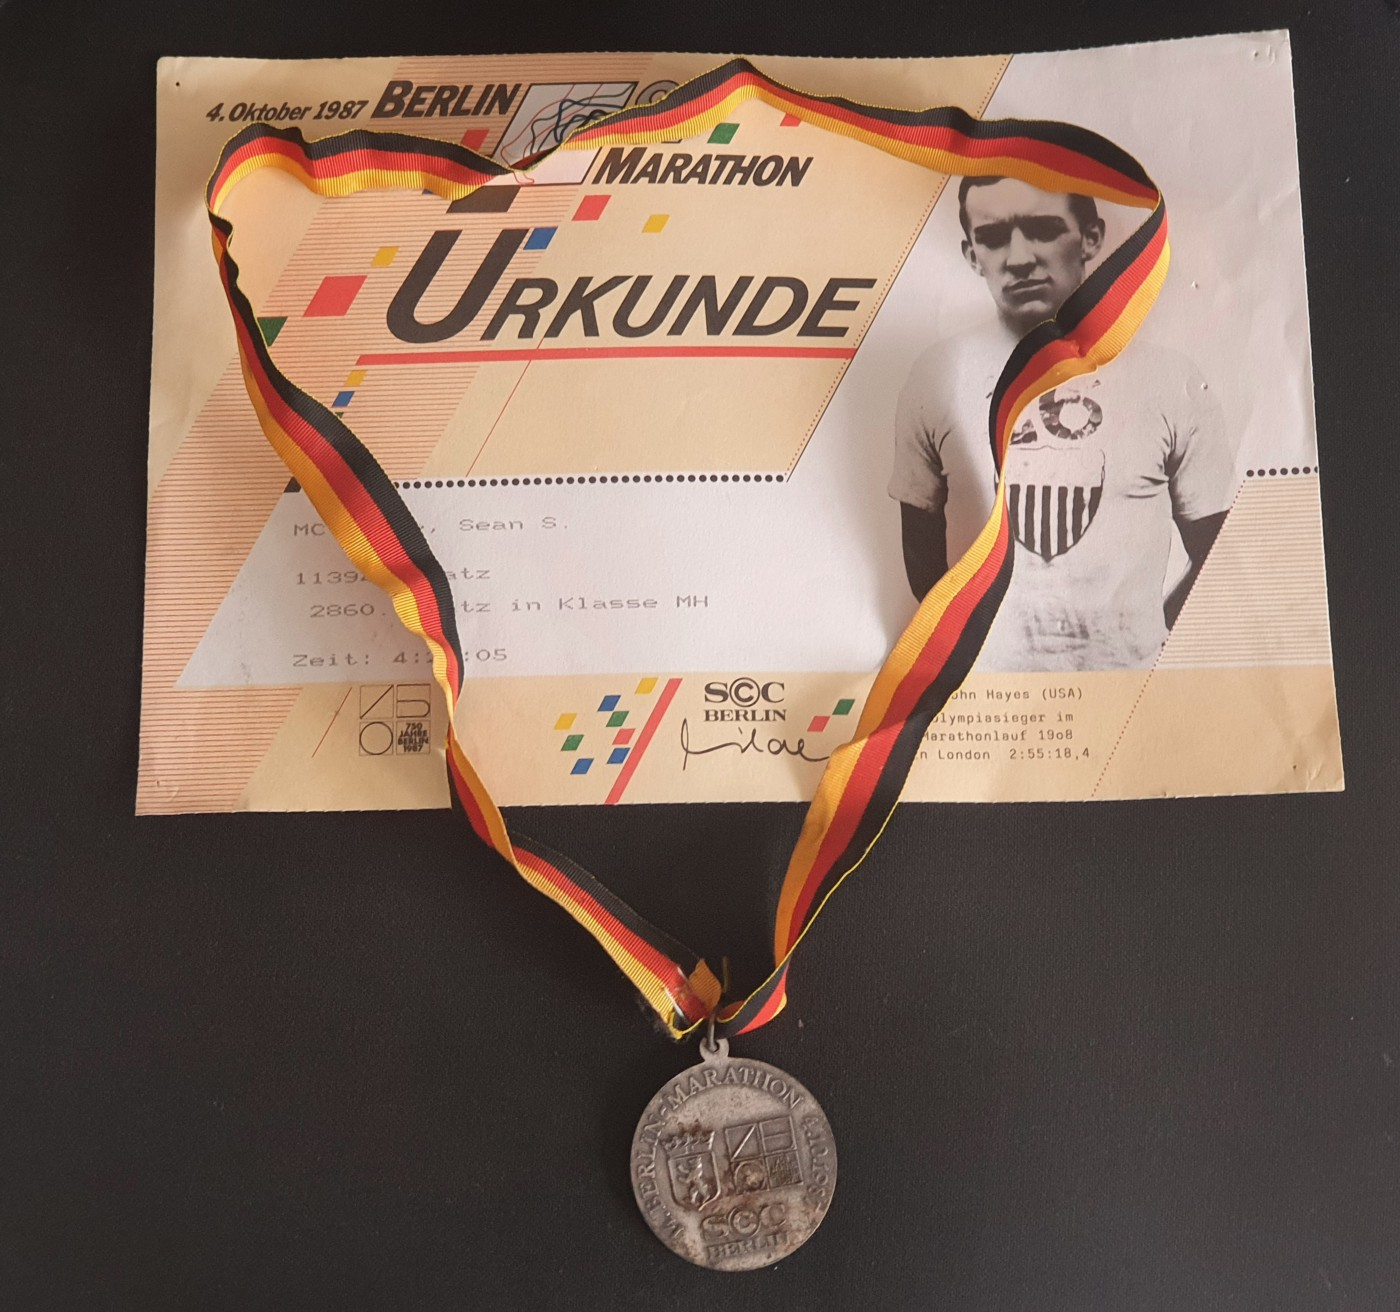 Berlin Marathon medal with the ribbon, depicting the colors of the German flag, sitting across the top of the Berlin Marathon Finisher's Certificate